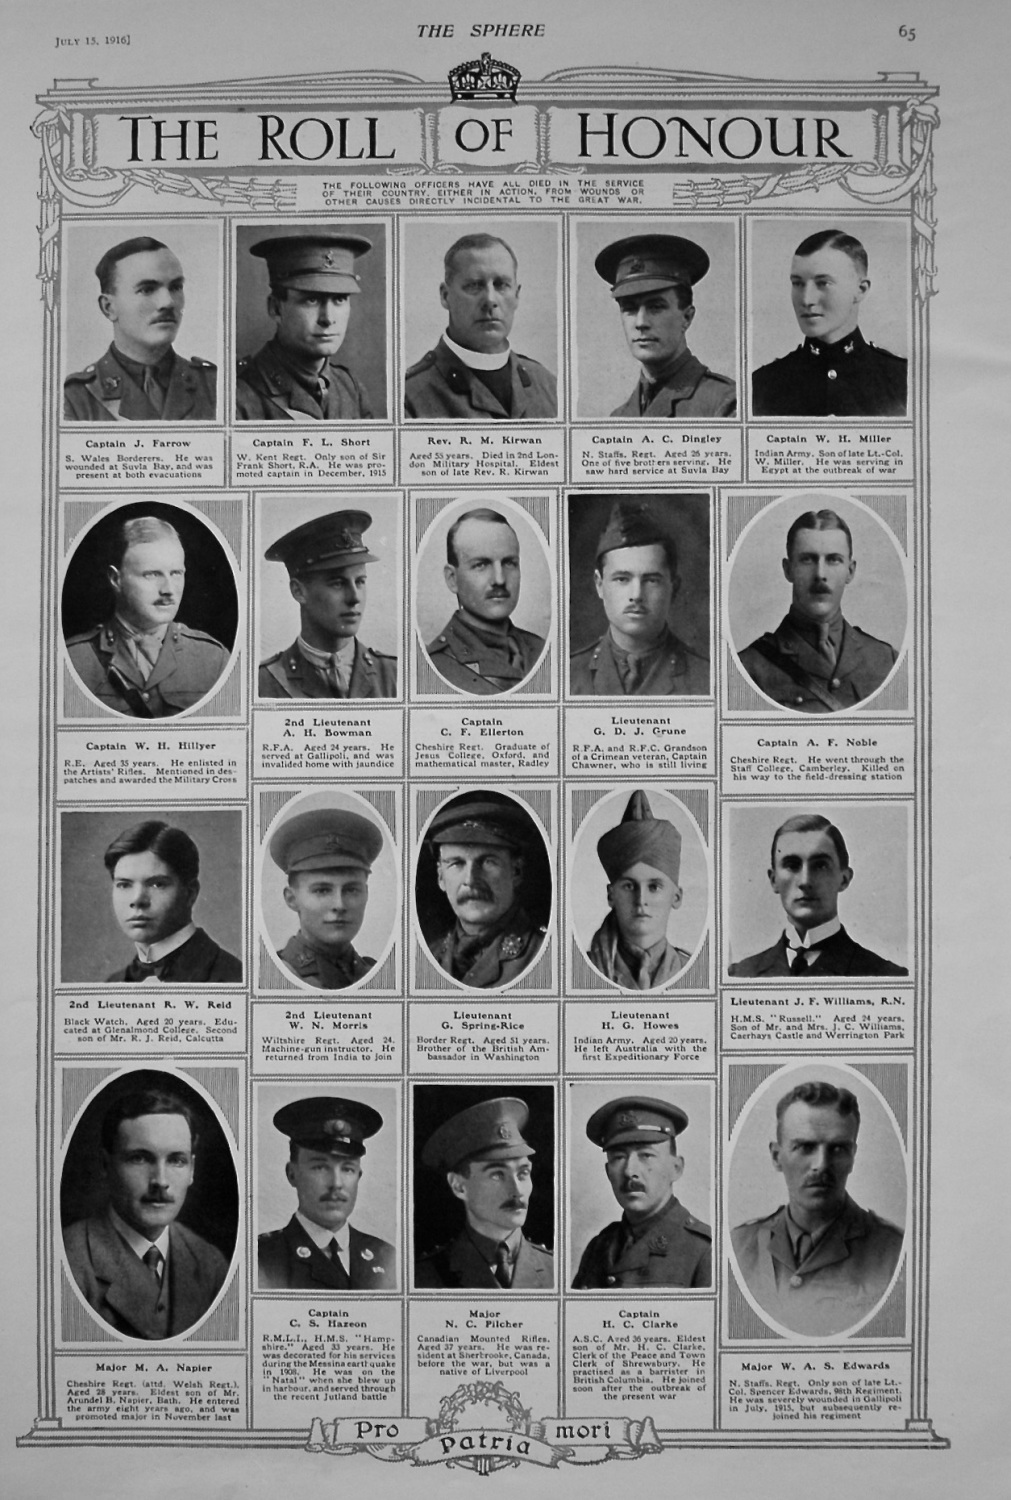 Roll of Honour. July 15th, 1916.